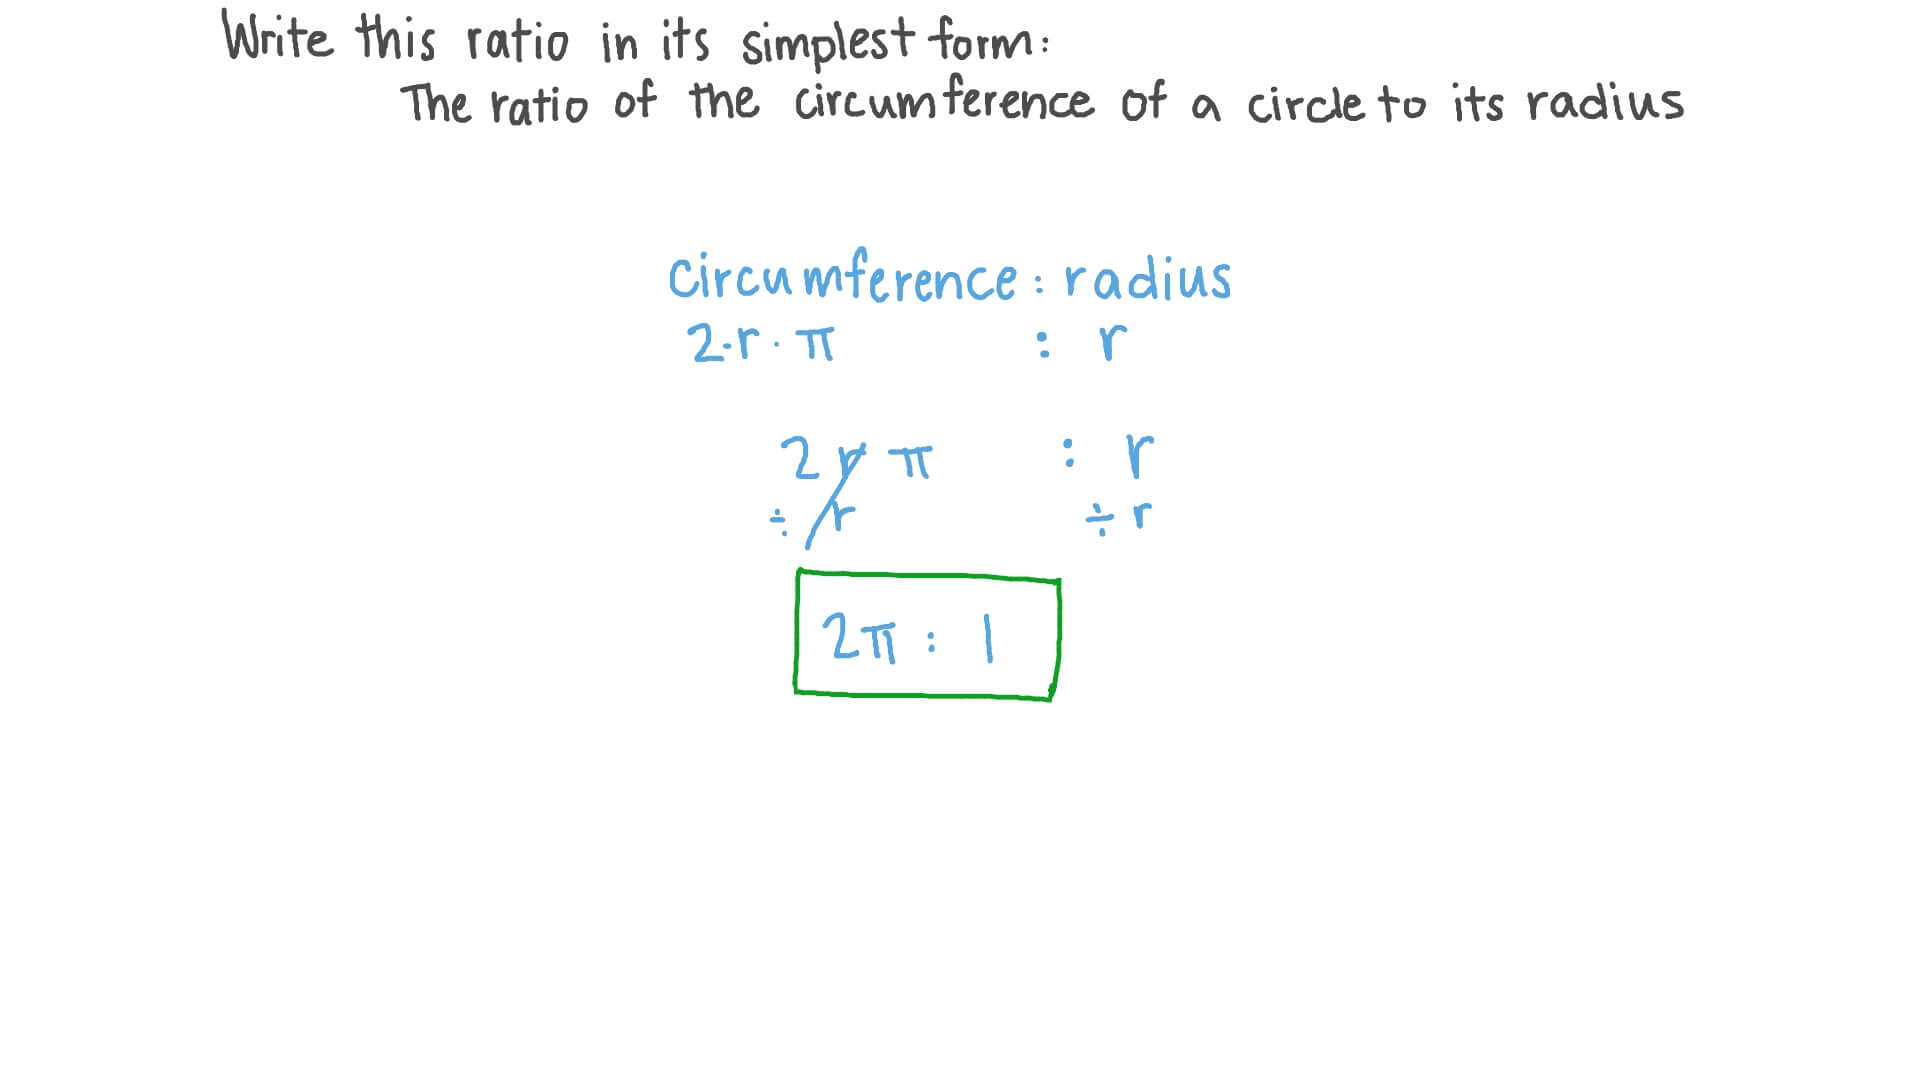 simplest form in ratio  The Ratio of the Circumference of a Circle to Its Radius